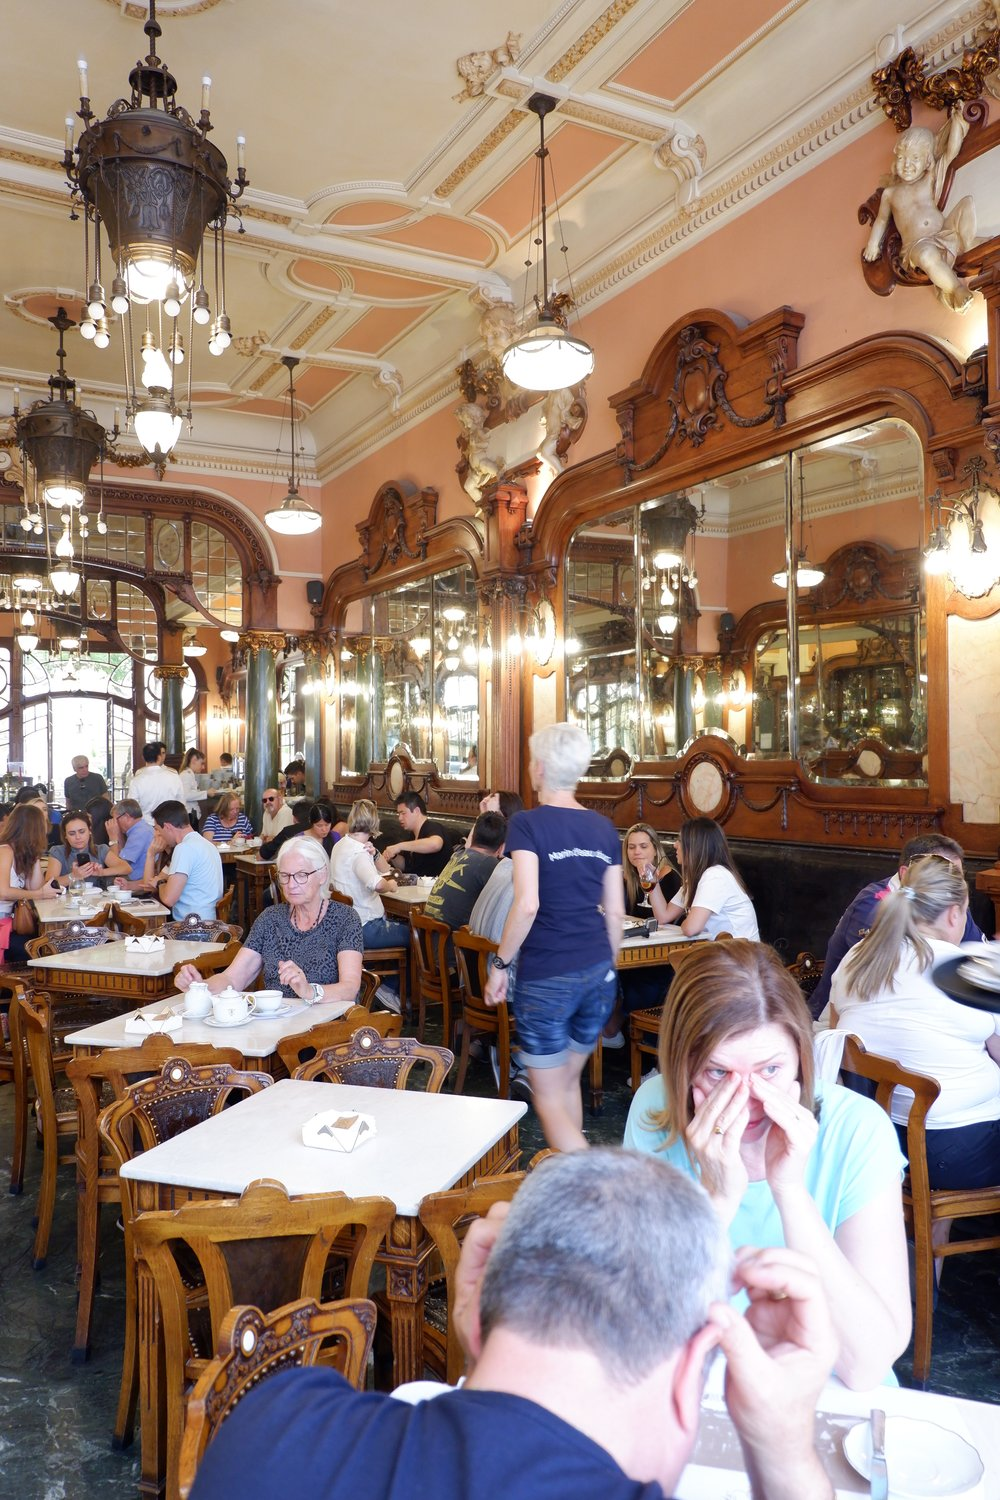 Interior-and-ceiling-of-majestic-cafe